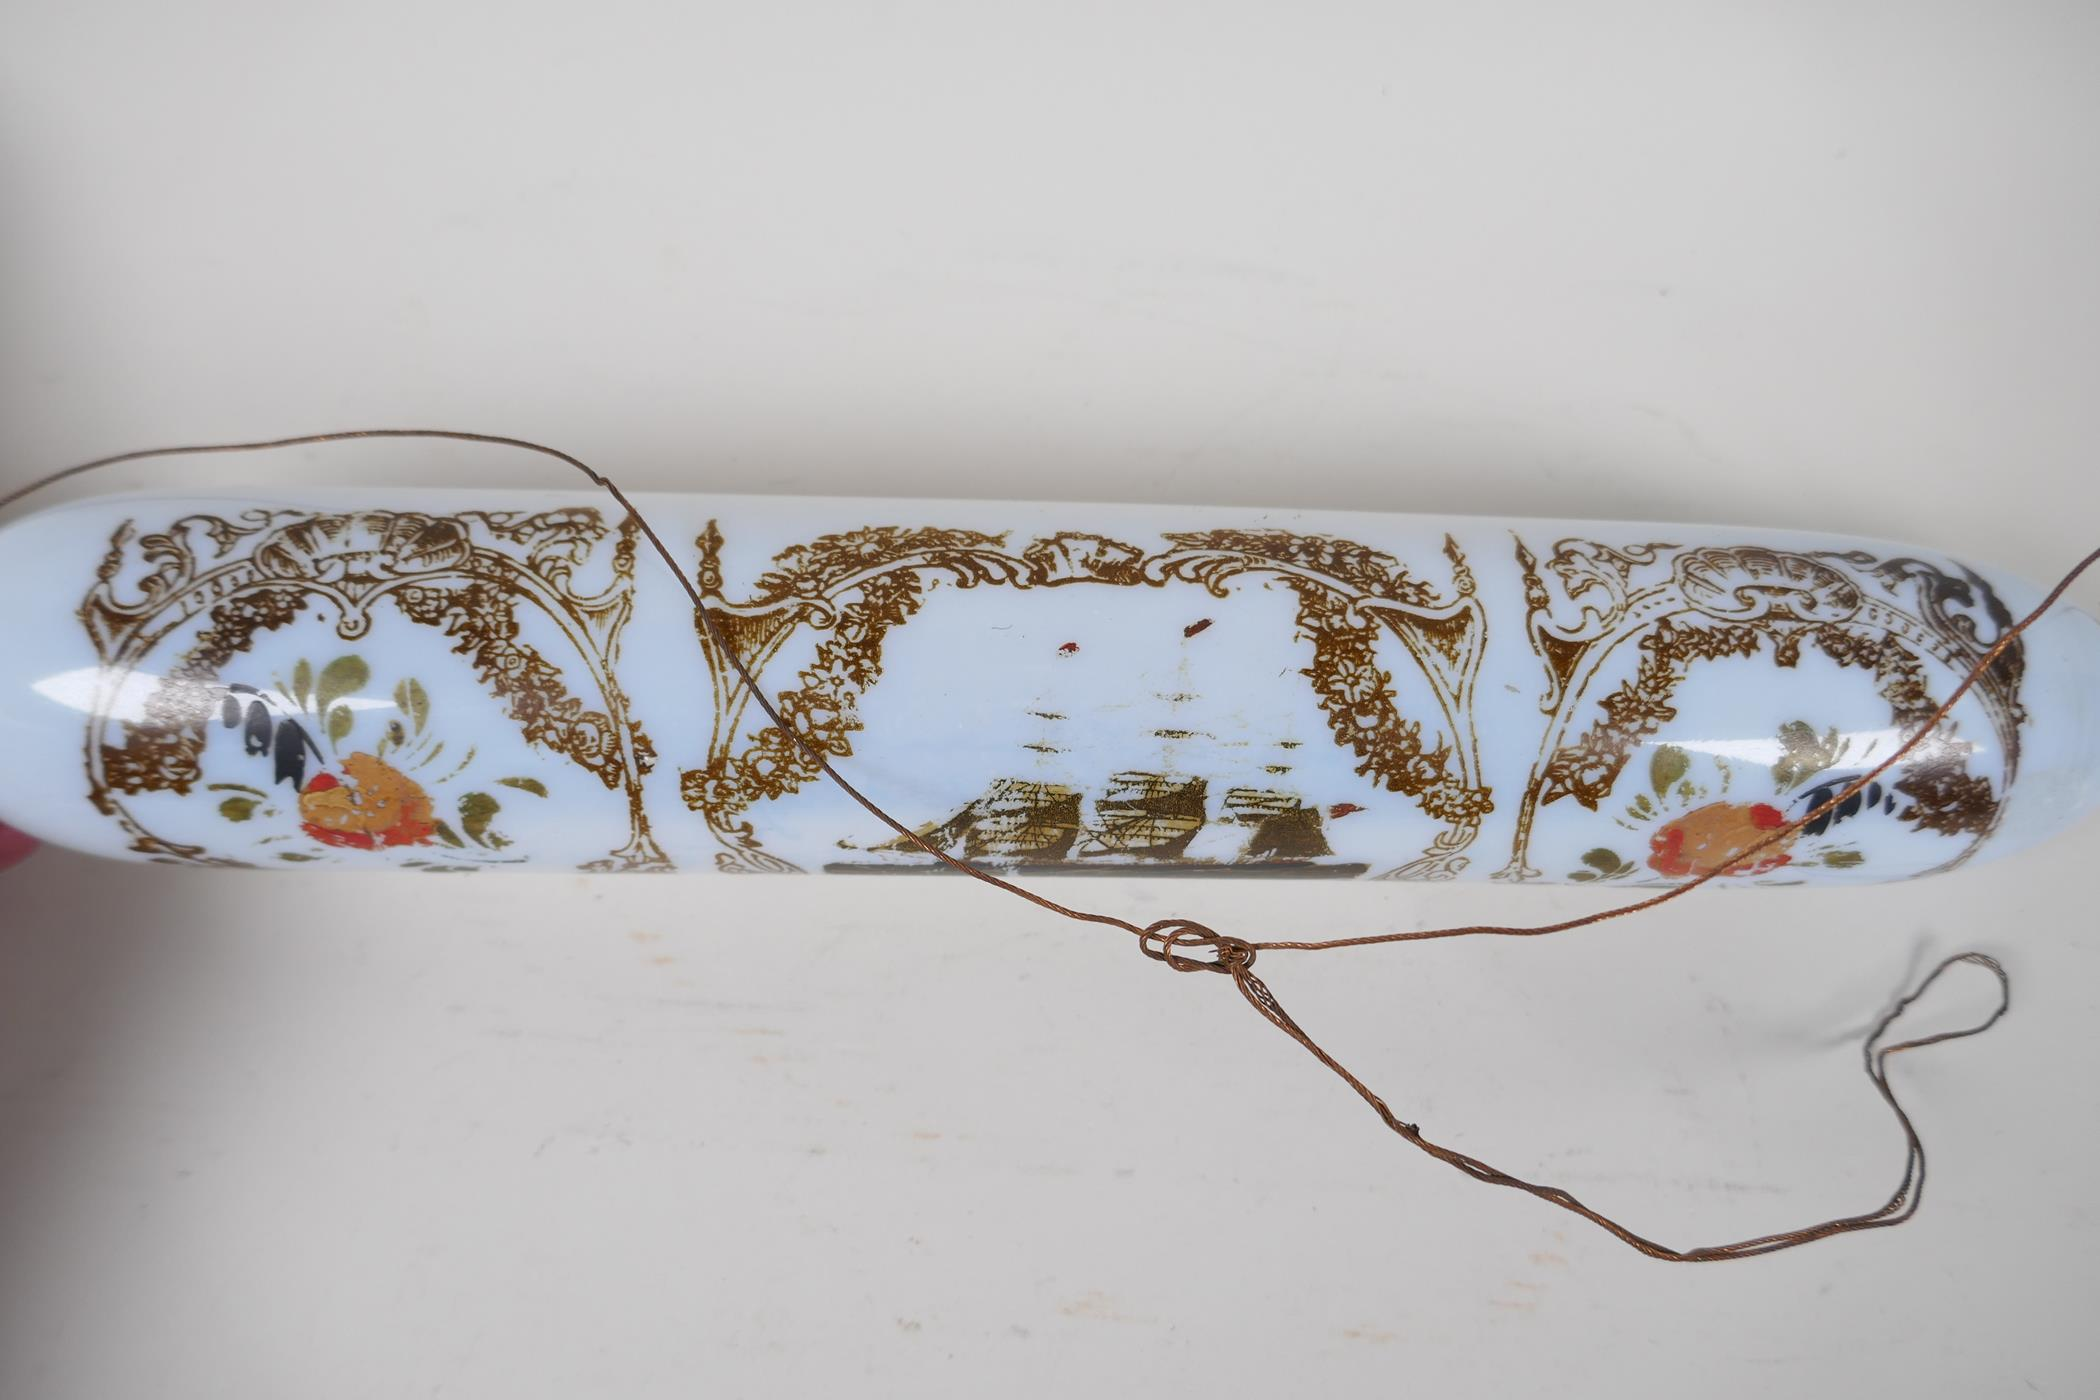 """A Victorian milk glass rolling pin, painted with flowers and a three masted ship, 14"""" long - Image 4 of 5"""